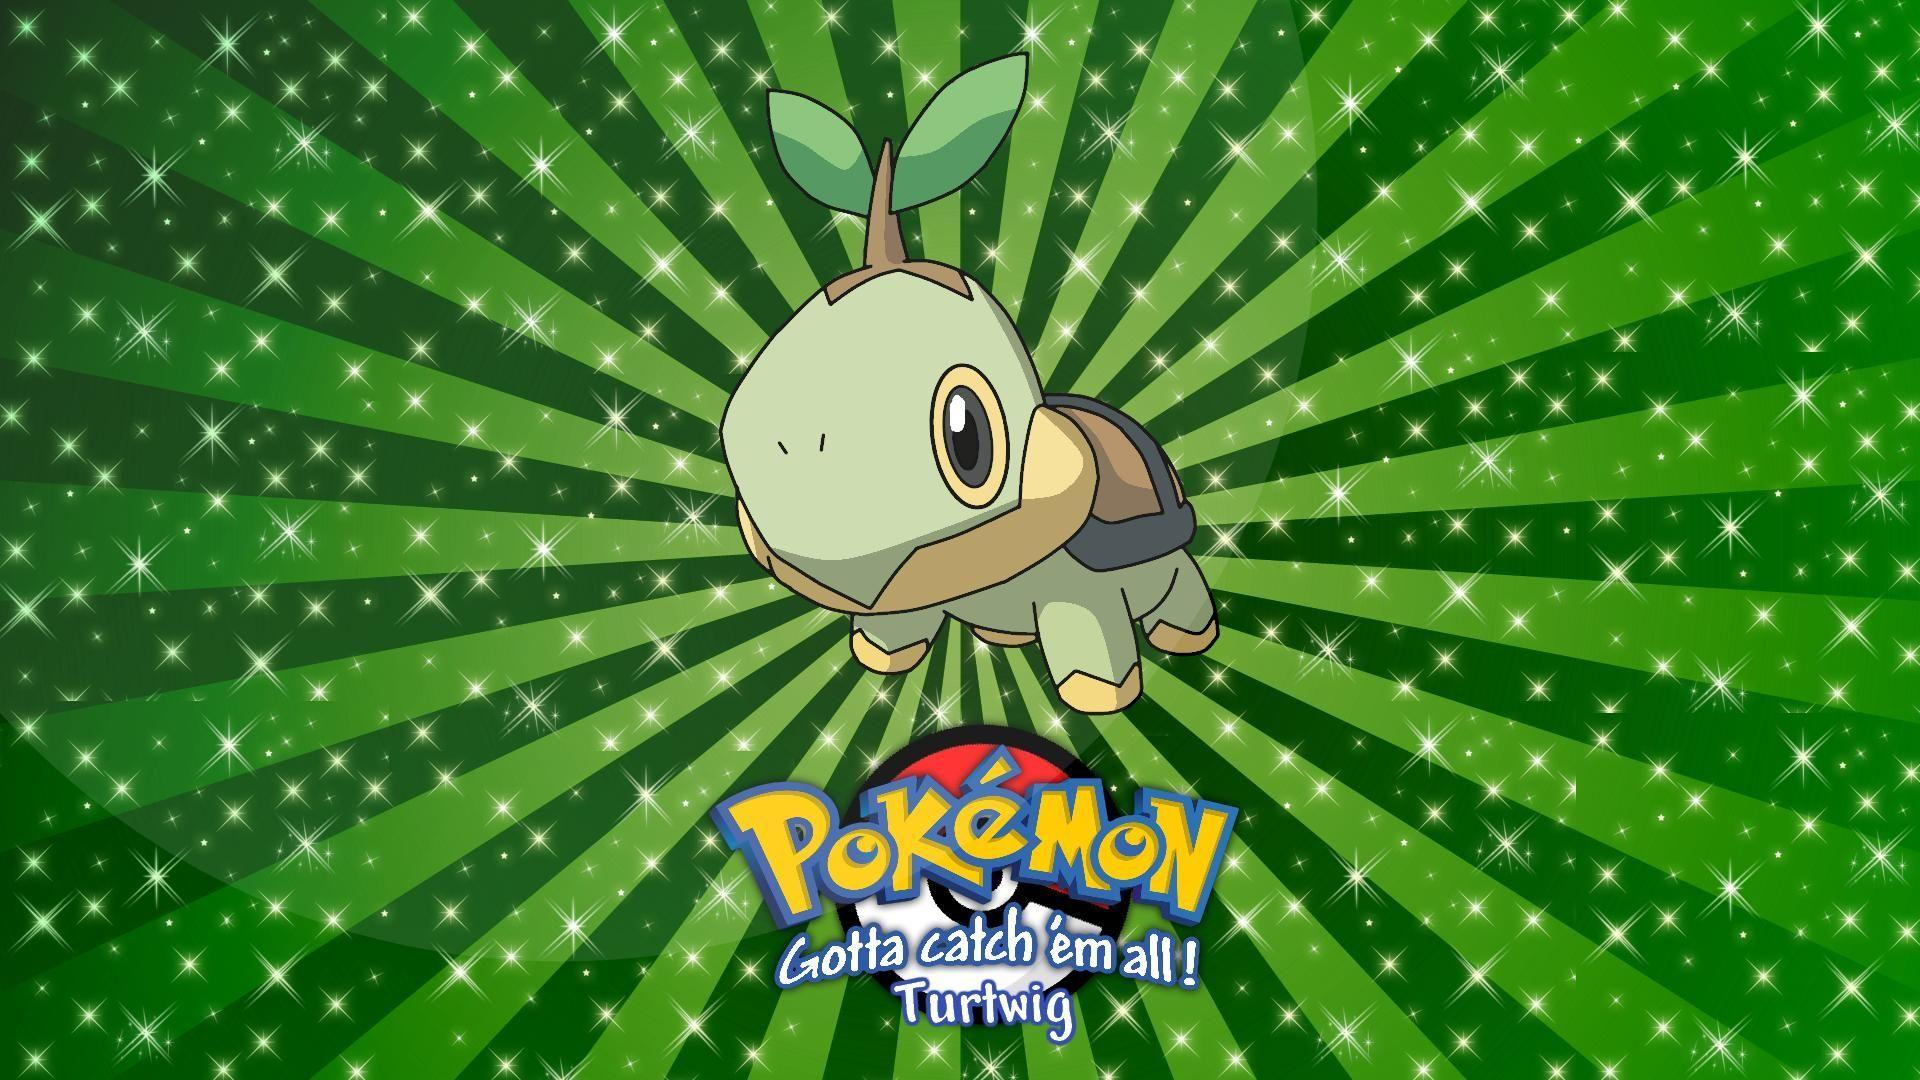 Turtwig Wallpaper | HD Wallpapers | Pinterest | Wallpaper, Hd ...